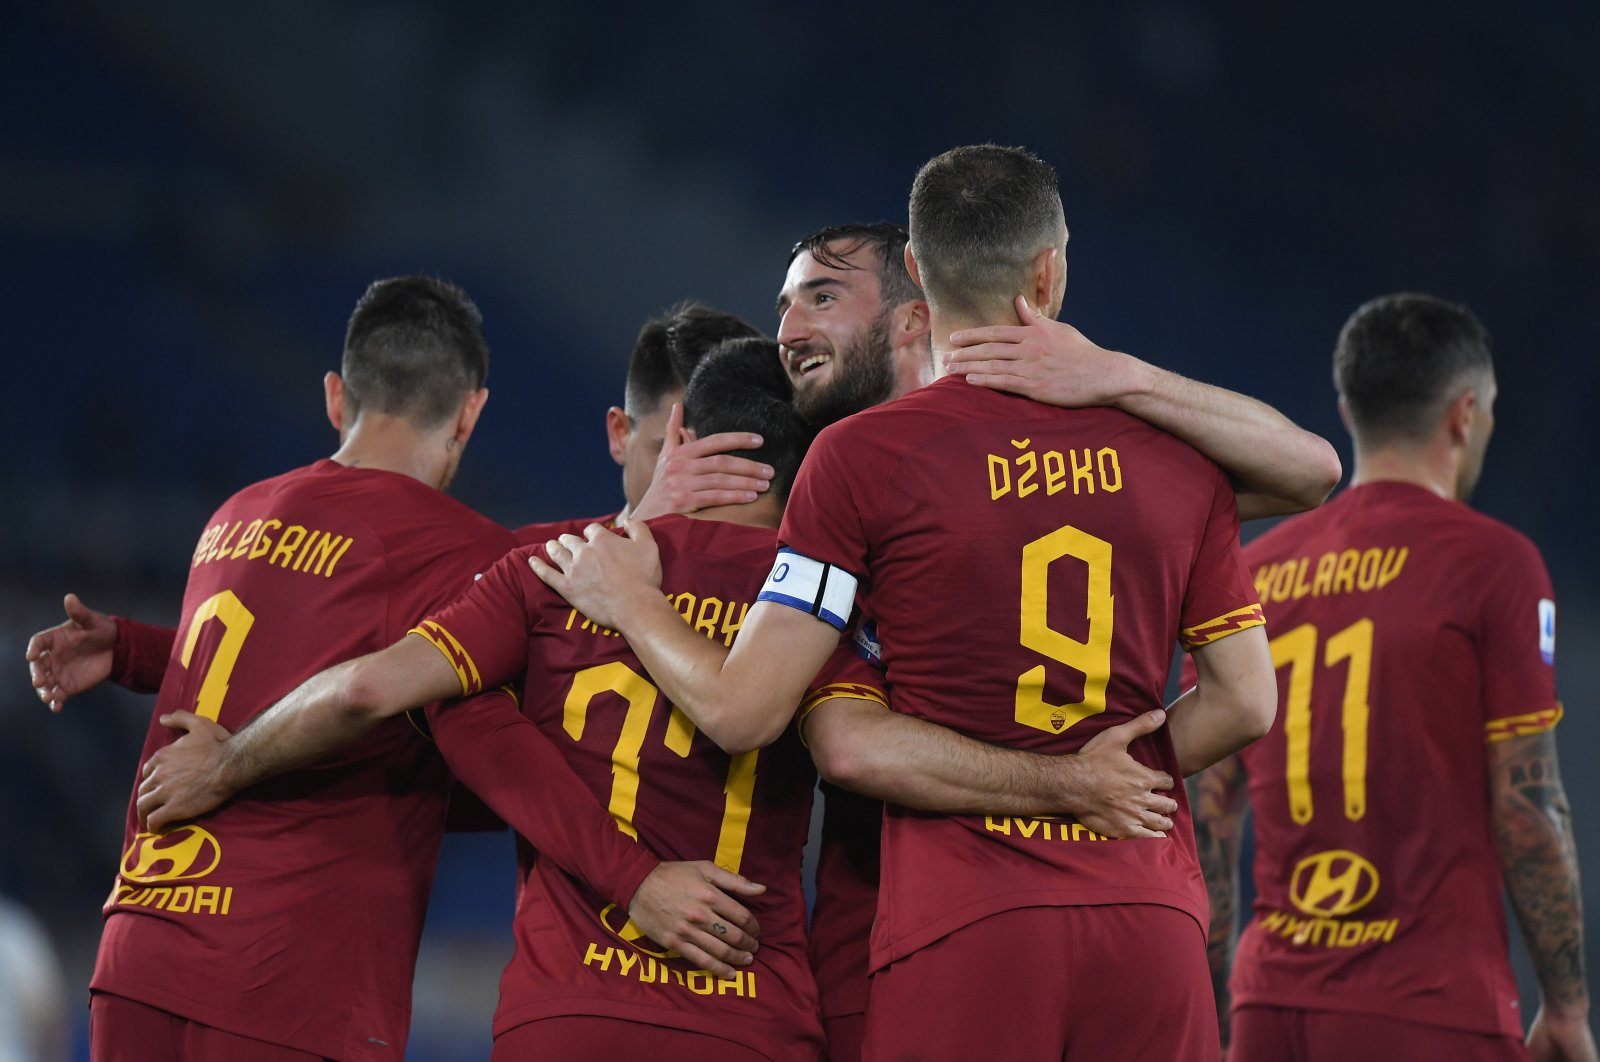 Henrikh Mkhitaryan celebrates scoring AS Roma's second goal against Lecce with Bryan Cristante and teammates, Stadio Olimpico, Rome, Italy, Feb. 23, 2020. (Reuters Photo)